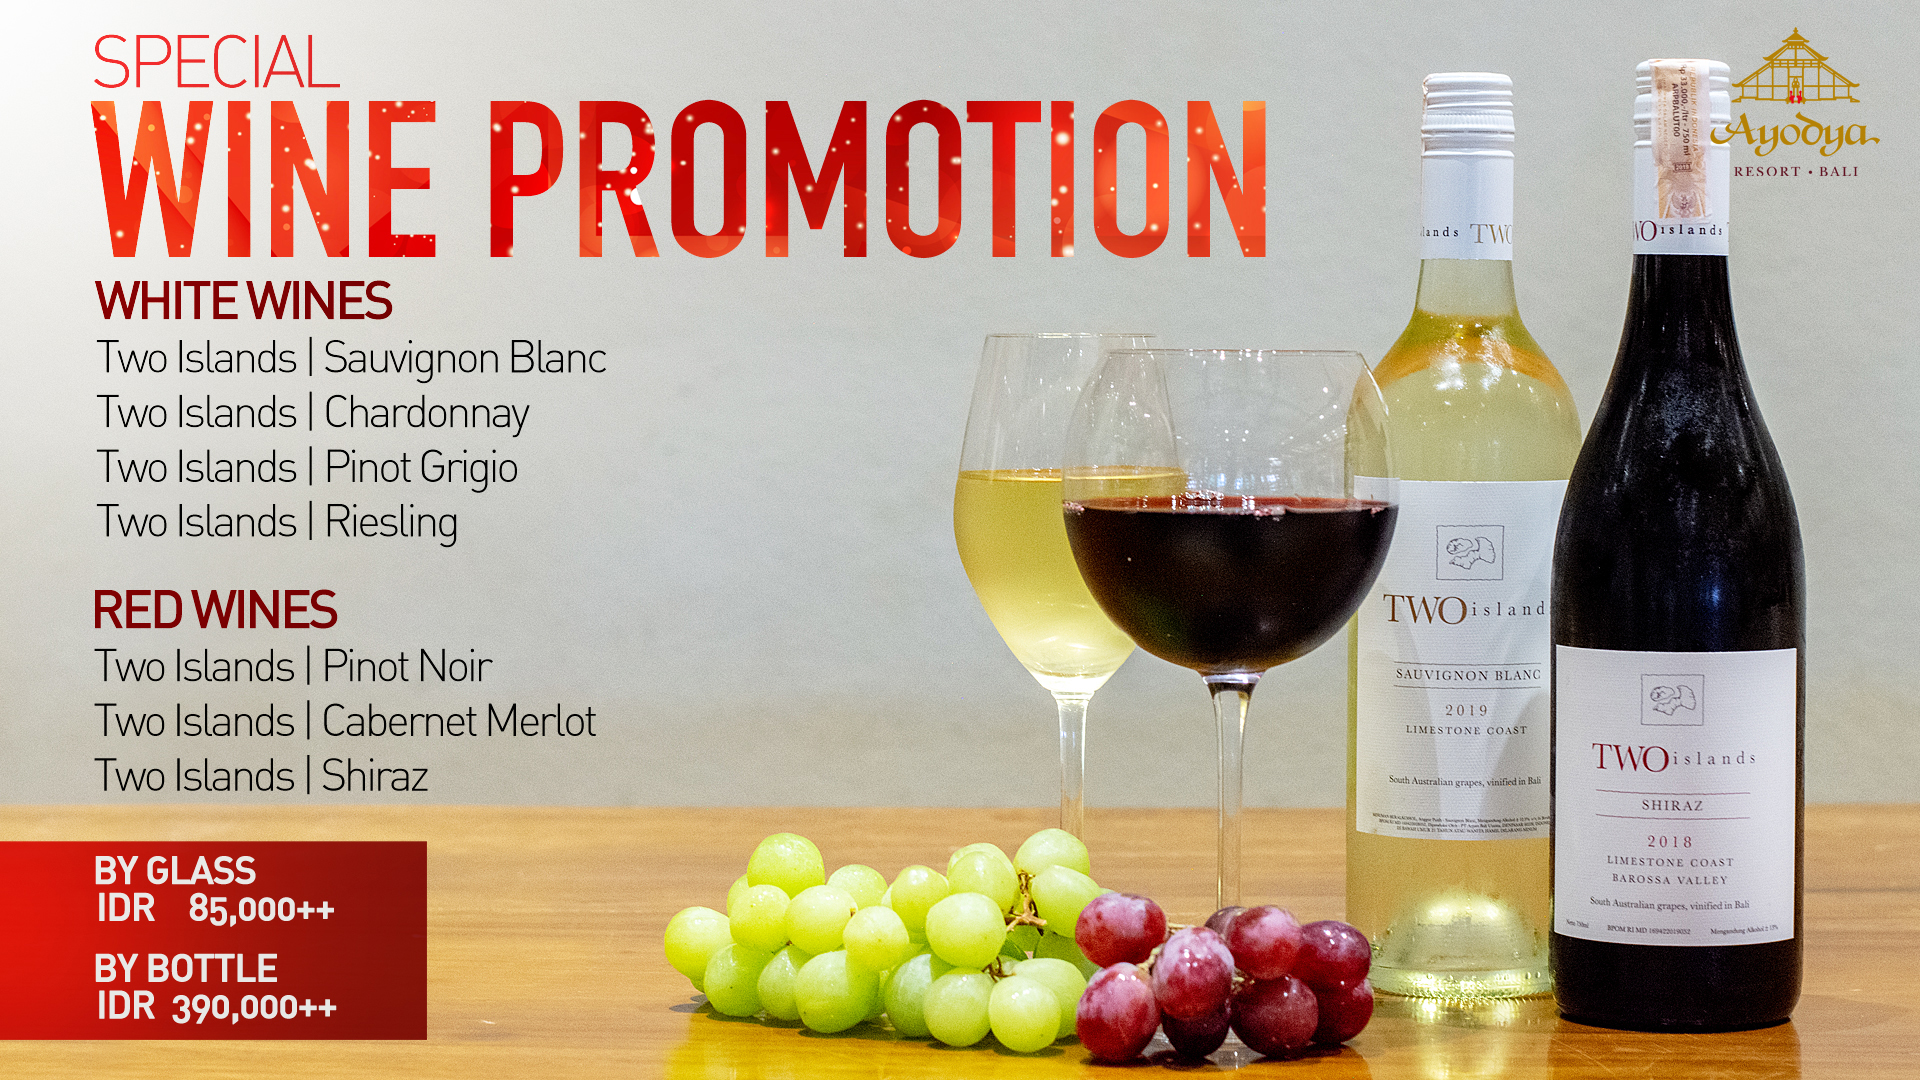 Special Wine Promotion